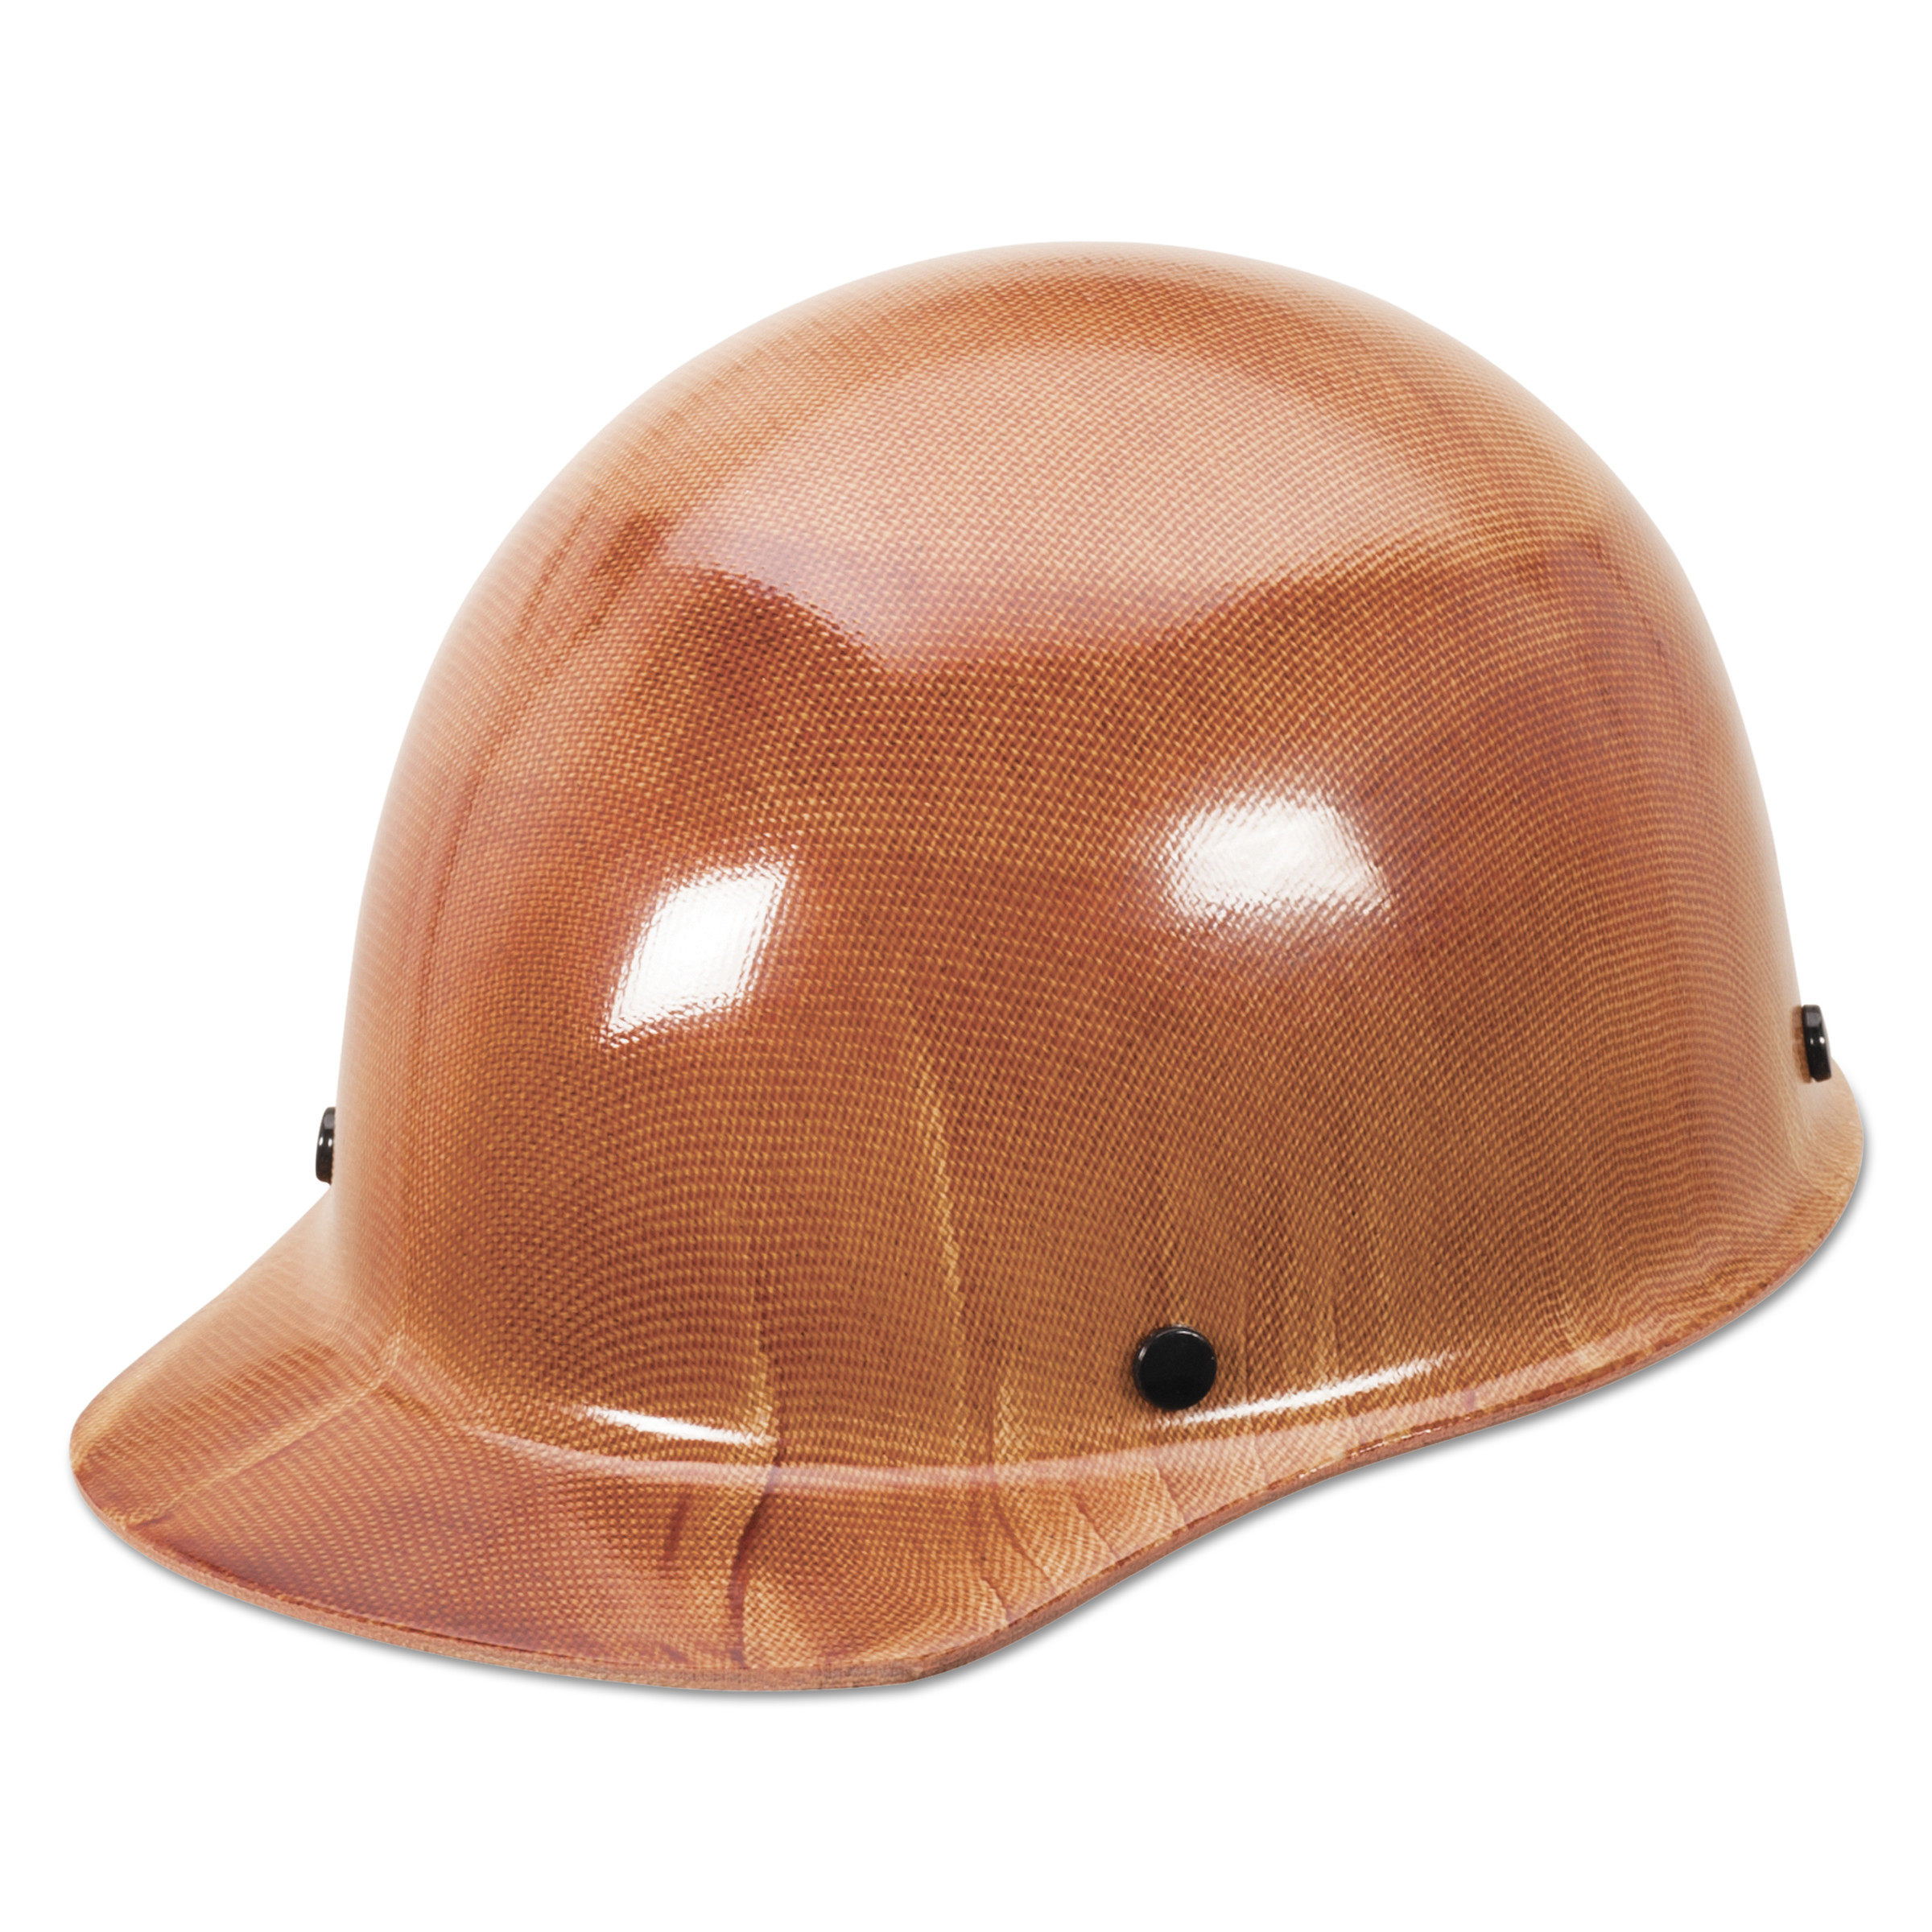 MSA Skullgard Protective Hard Hats, Pin-Lock Suspension, Size 6 1 2 8, Natural Tan by SAFETY WORKS